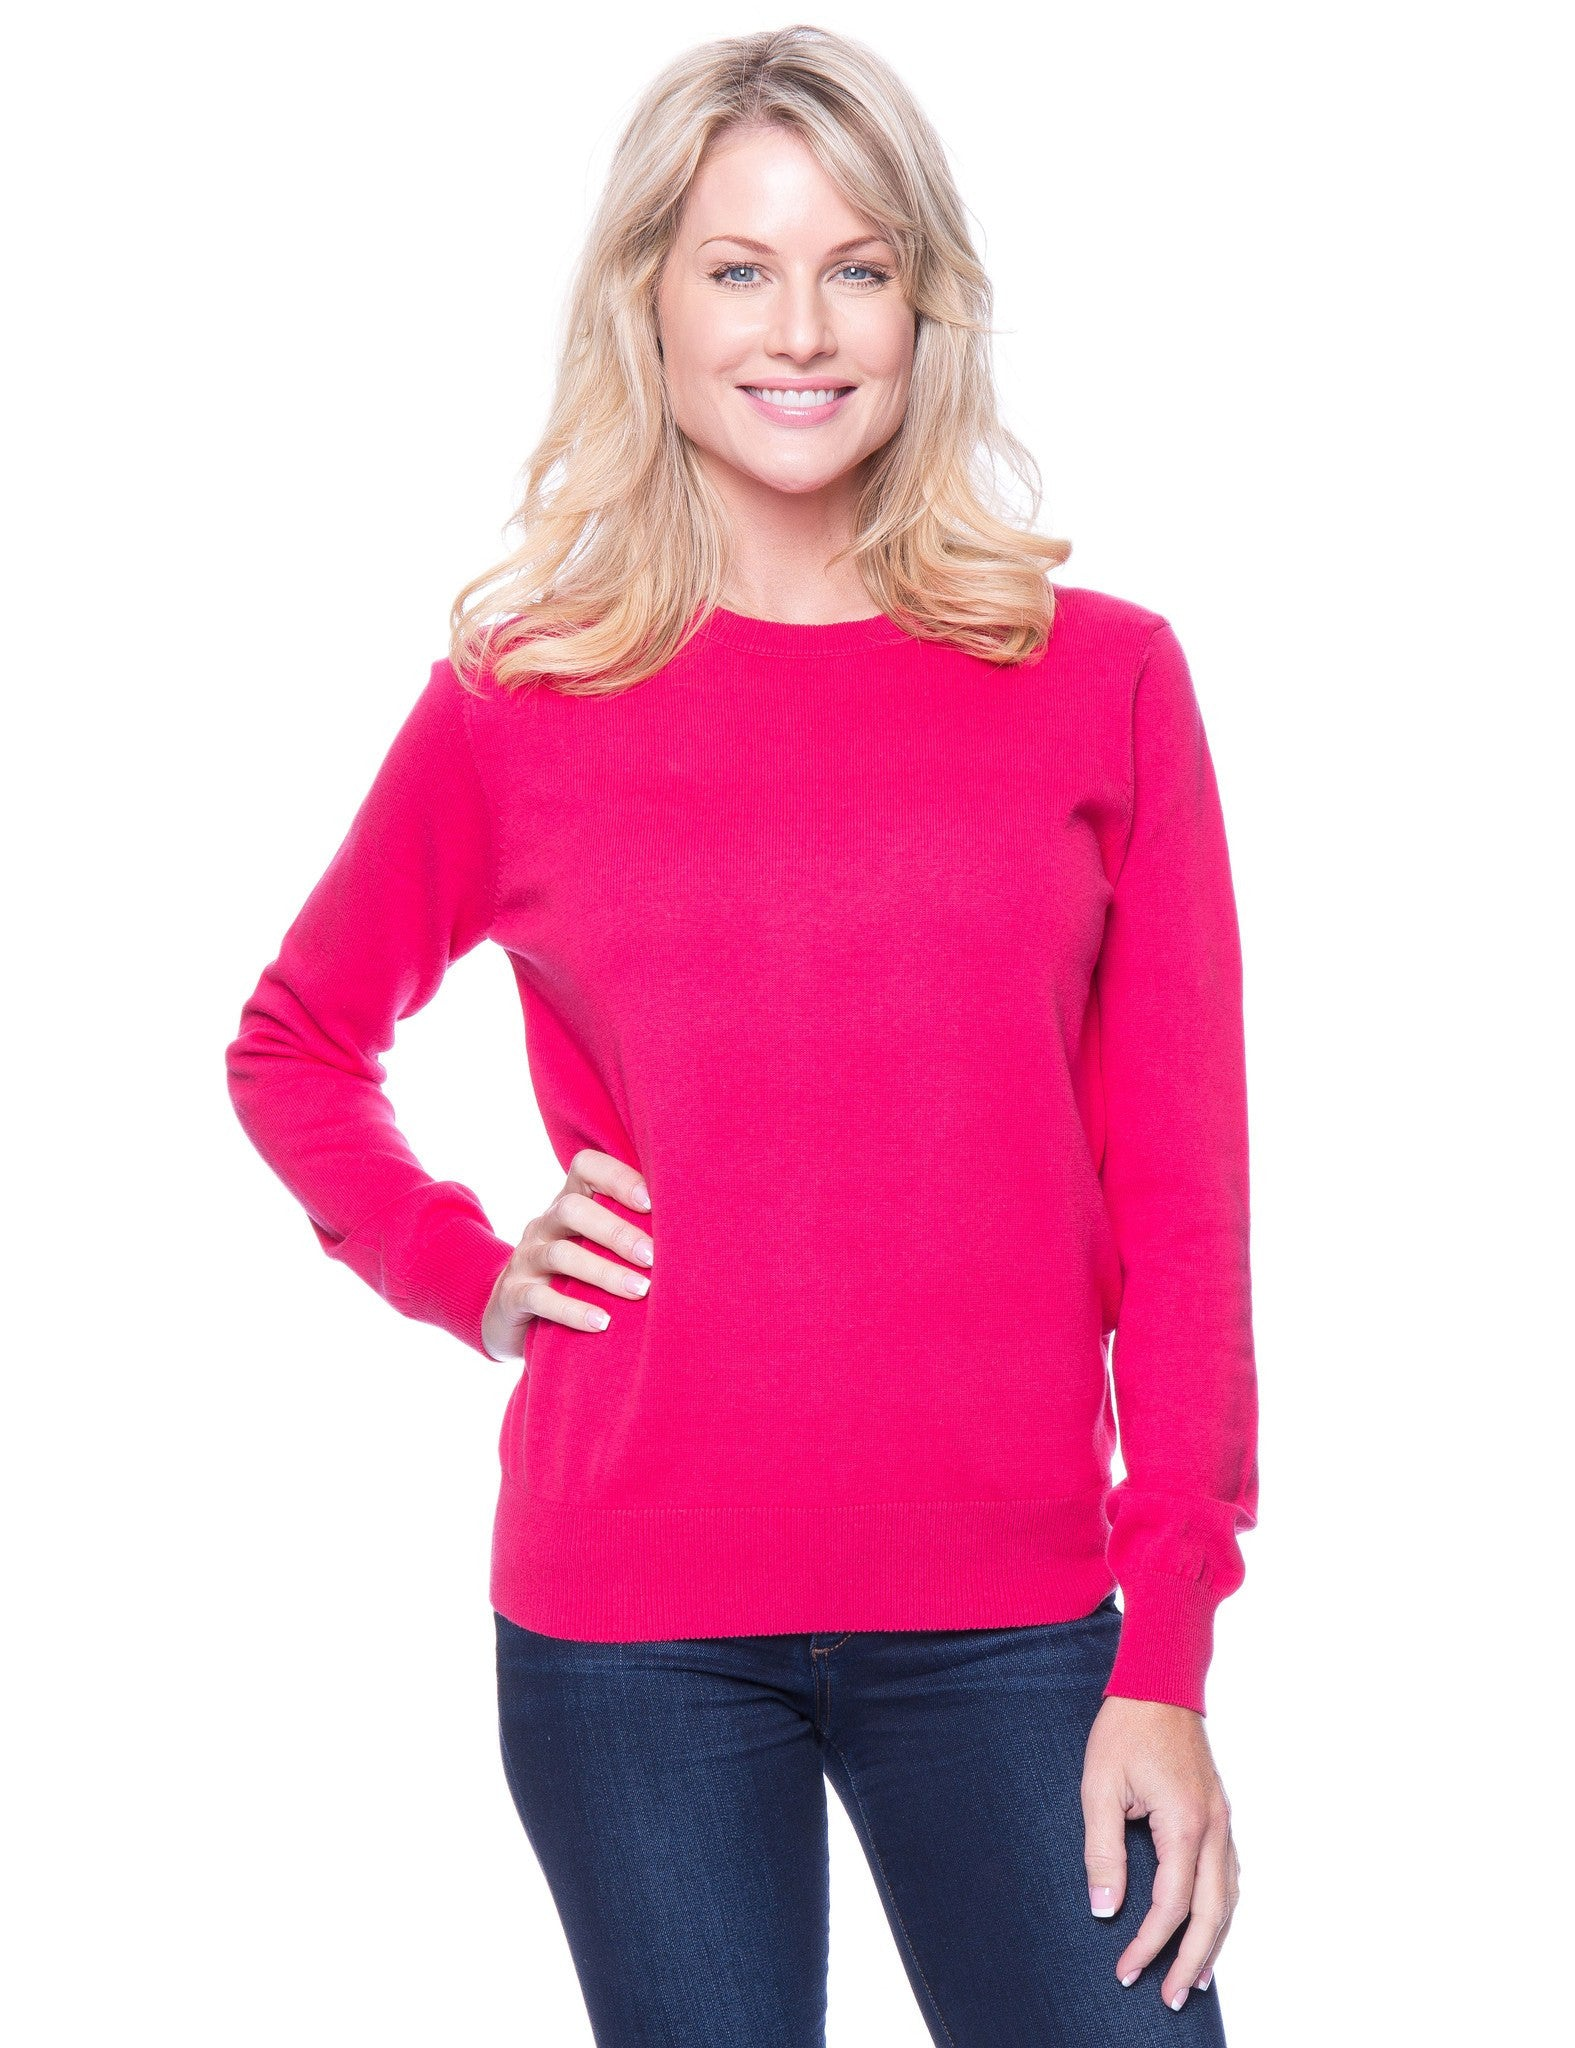 Premium Cotton Crew Neck Sweater - Fuchsia